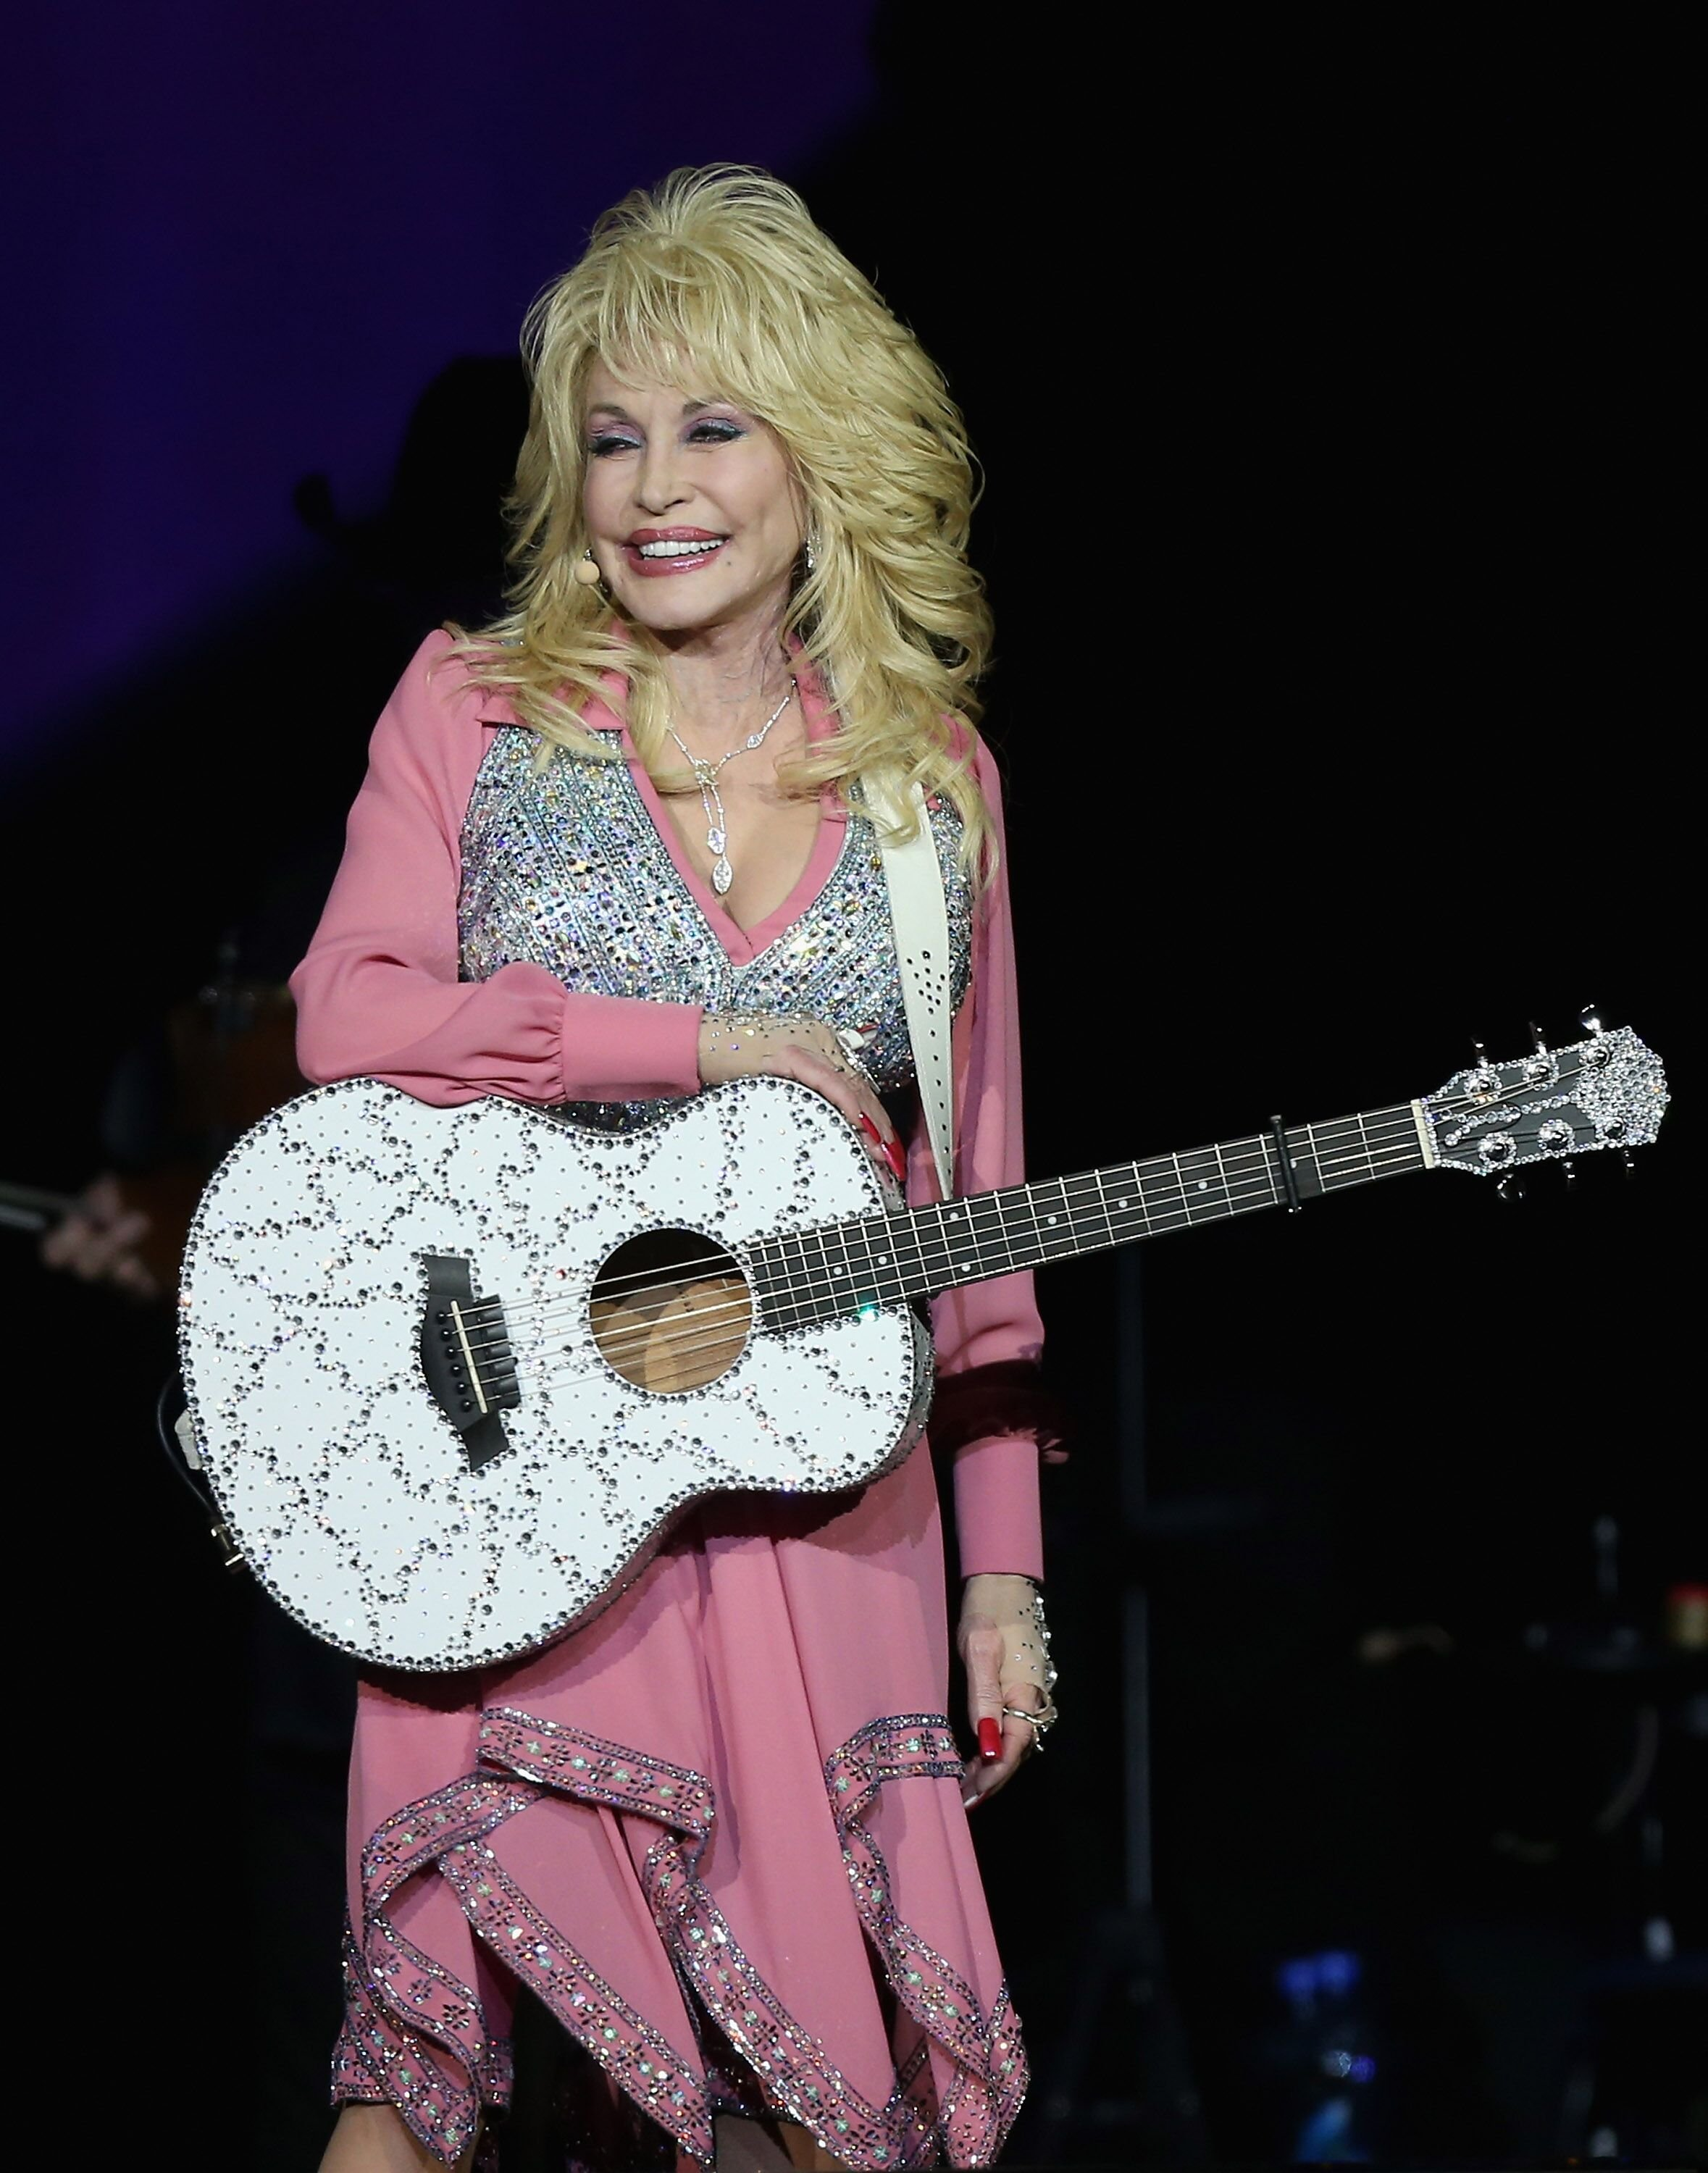 Dolly Parton performs live for fans at Vector Arena on February 7, 2014. | Source: Getty Images